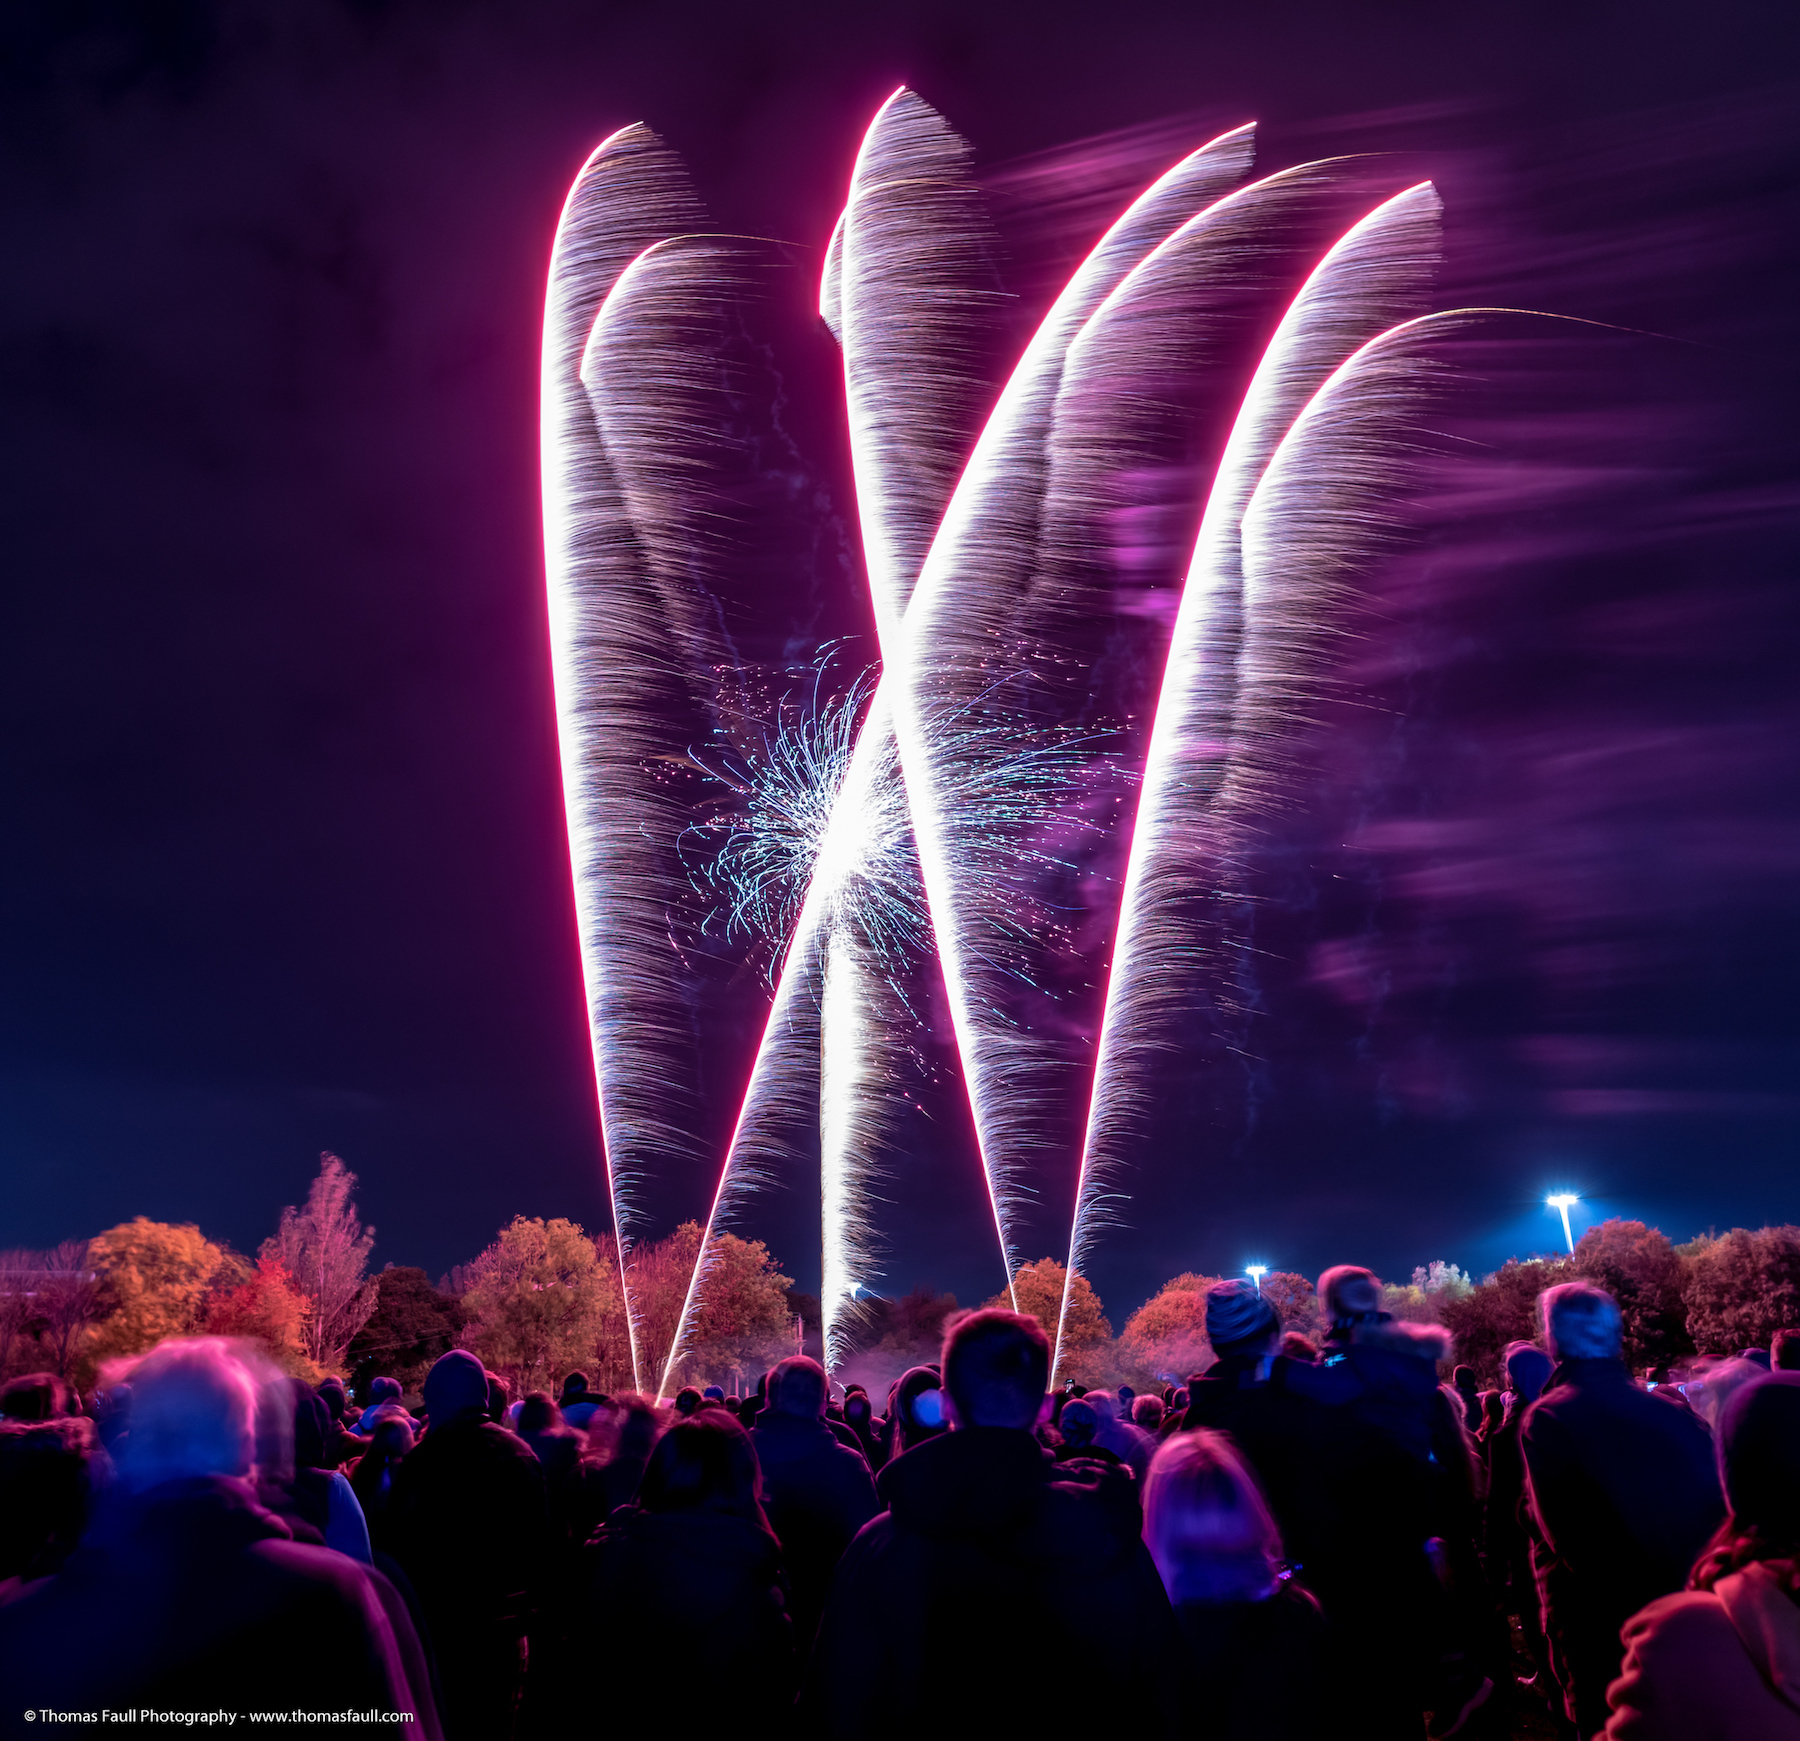 Get in the diary: 15 firework displays in Dorset and the New Forest